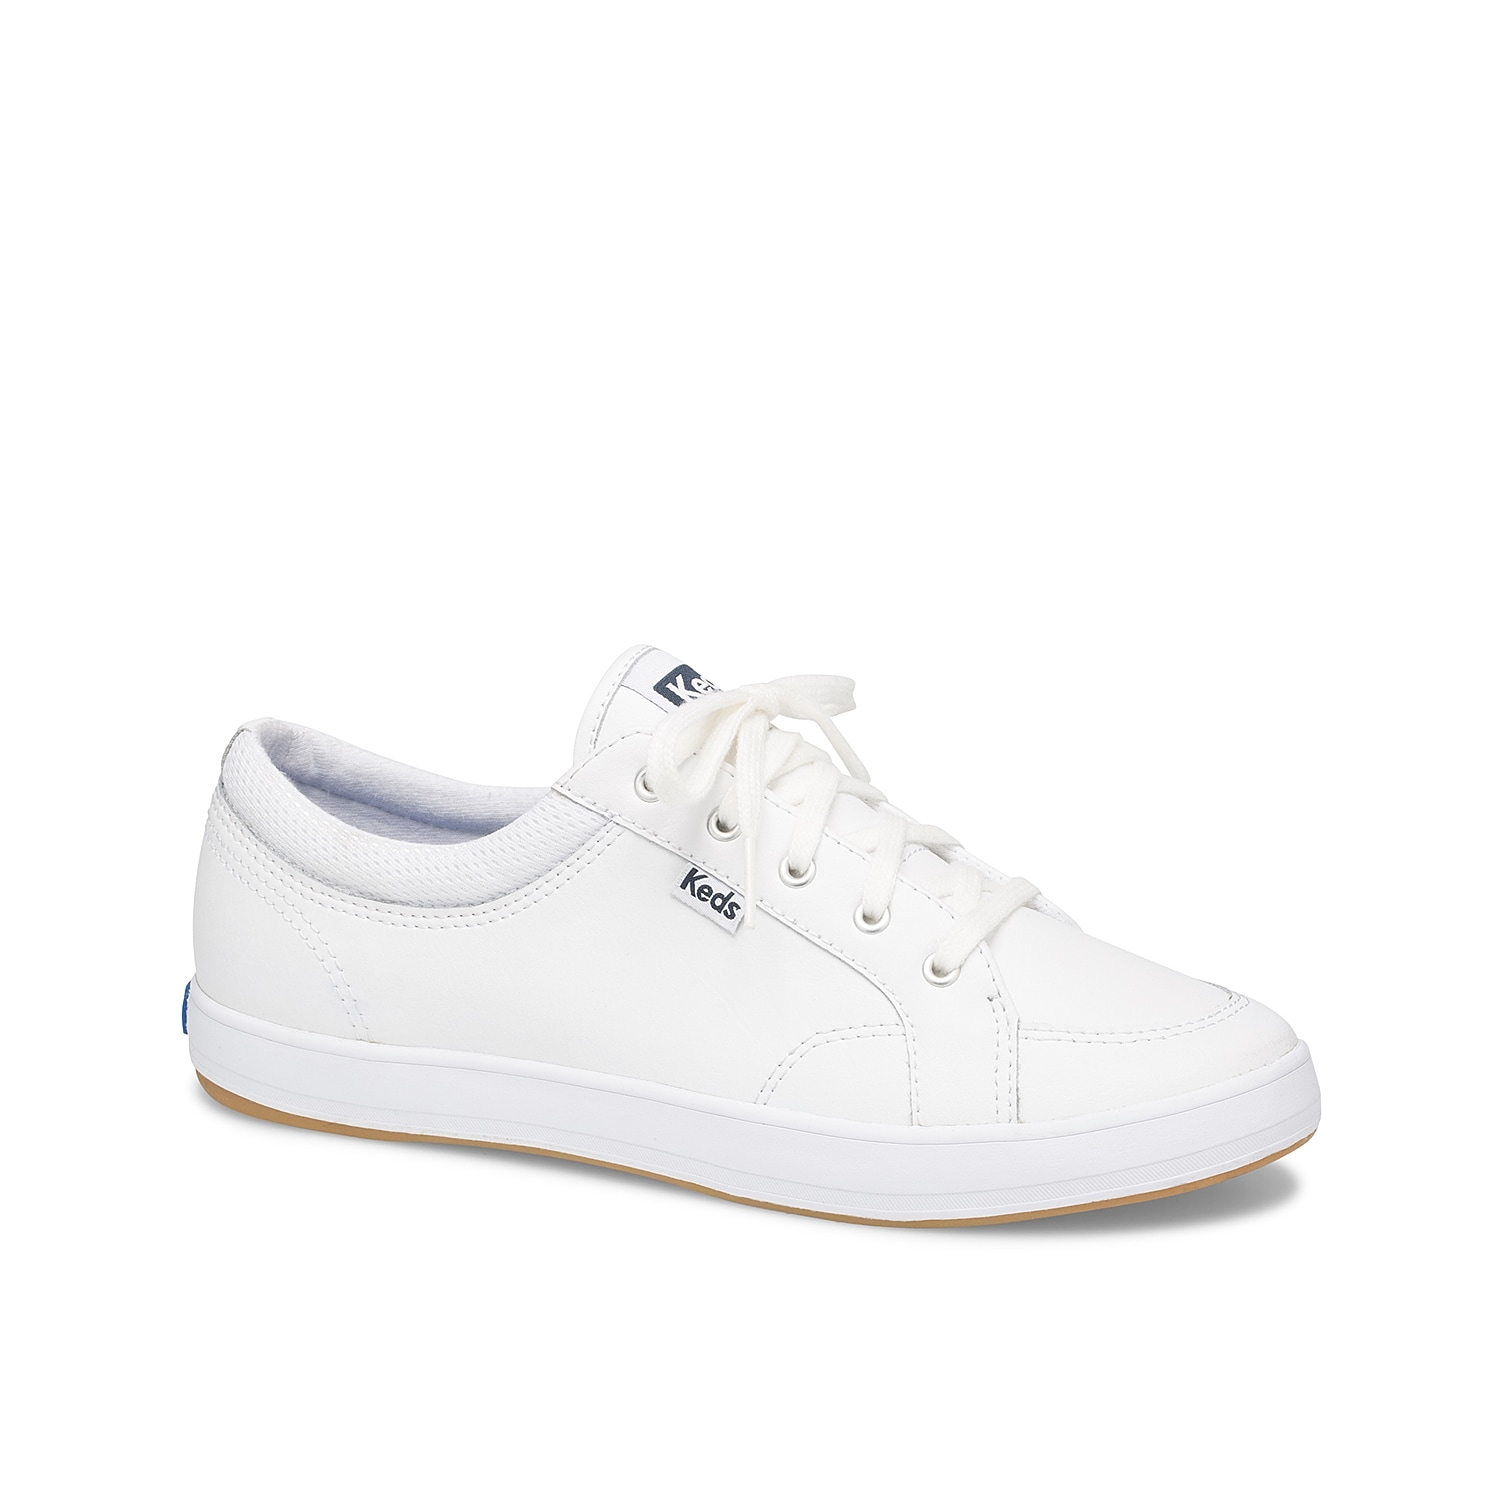 The women\\\'s Center sneakers from Keds is a classic style perfect for any day. These leather low-tops feature a Dream Foam Memory™ cushioning for comfort in every step.